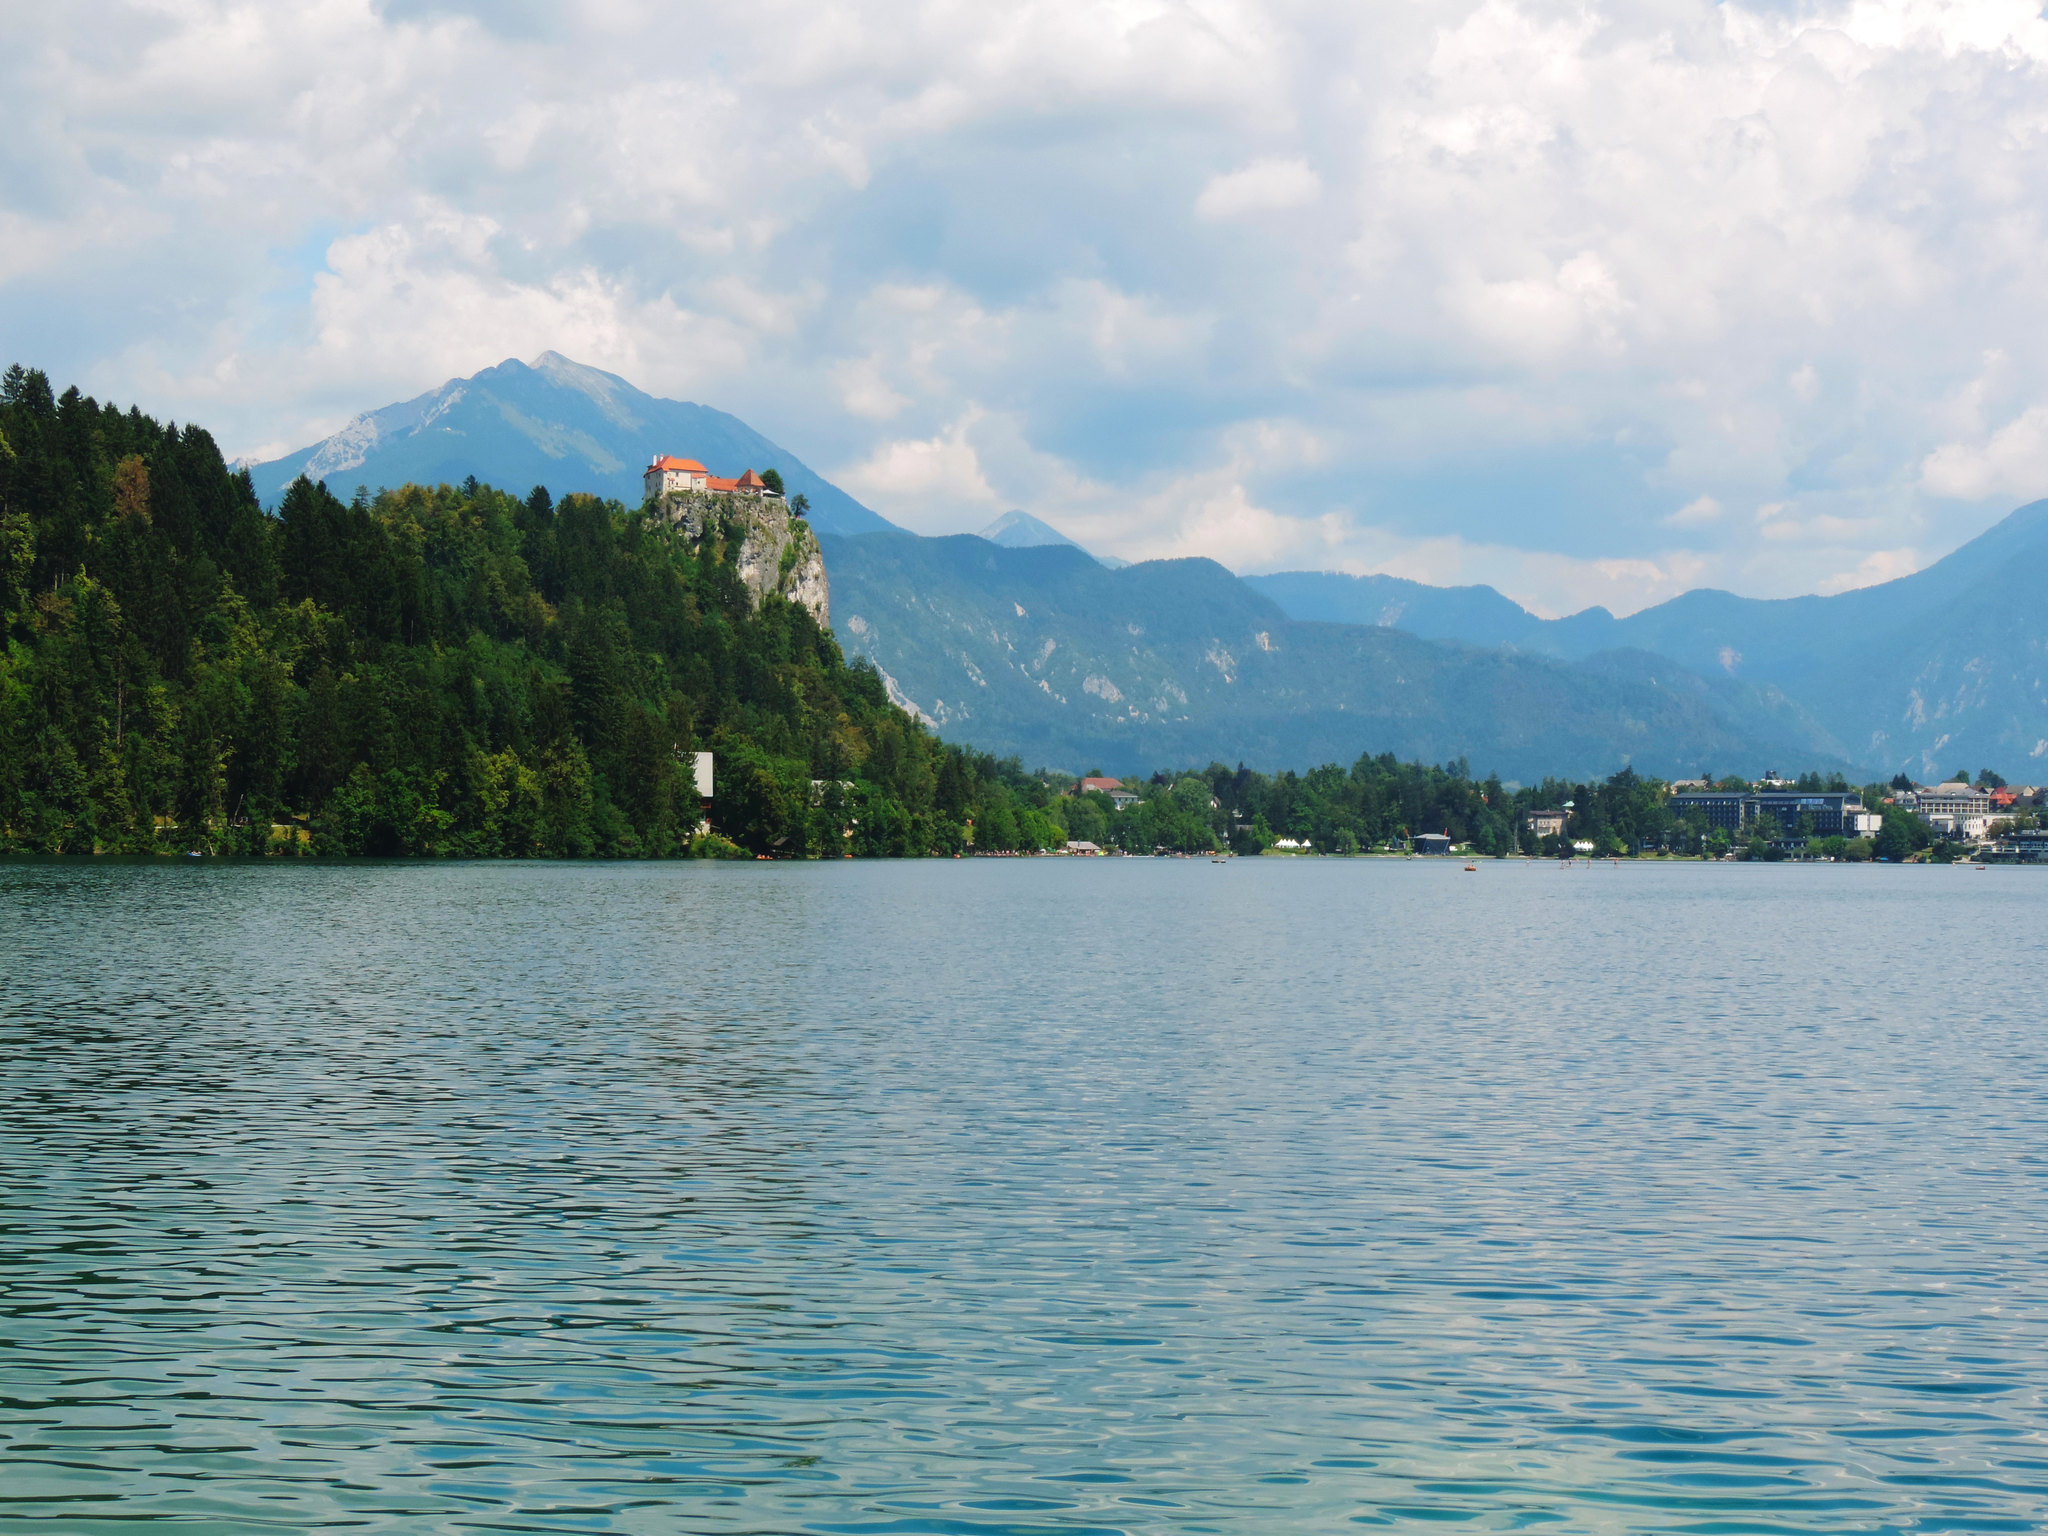 Our 9 Days Slovenia Itinerary: Lake Bled, Slovenia